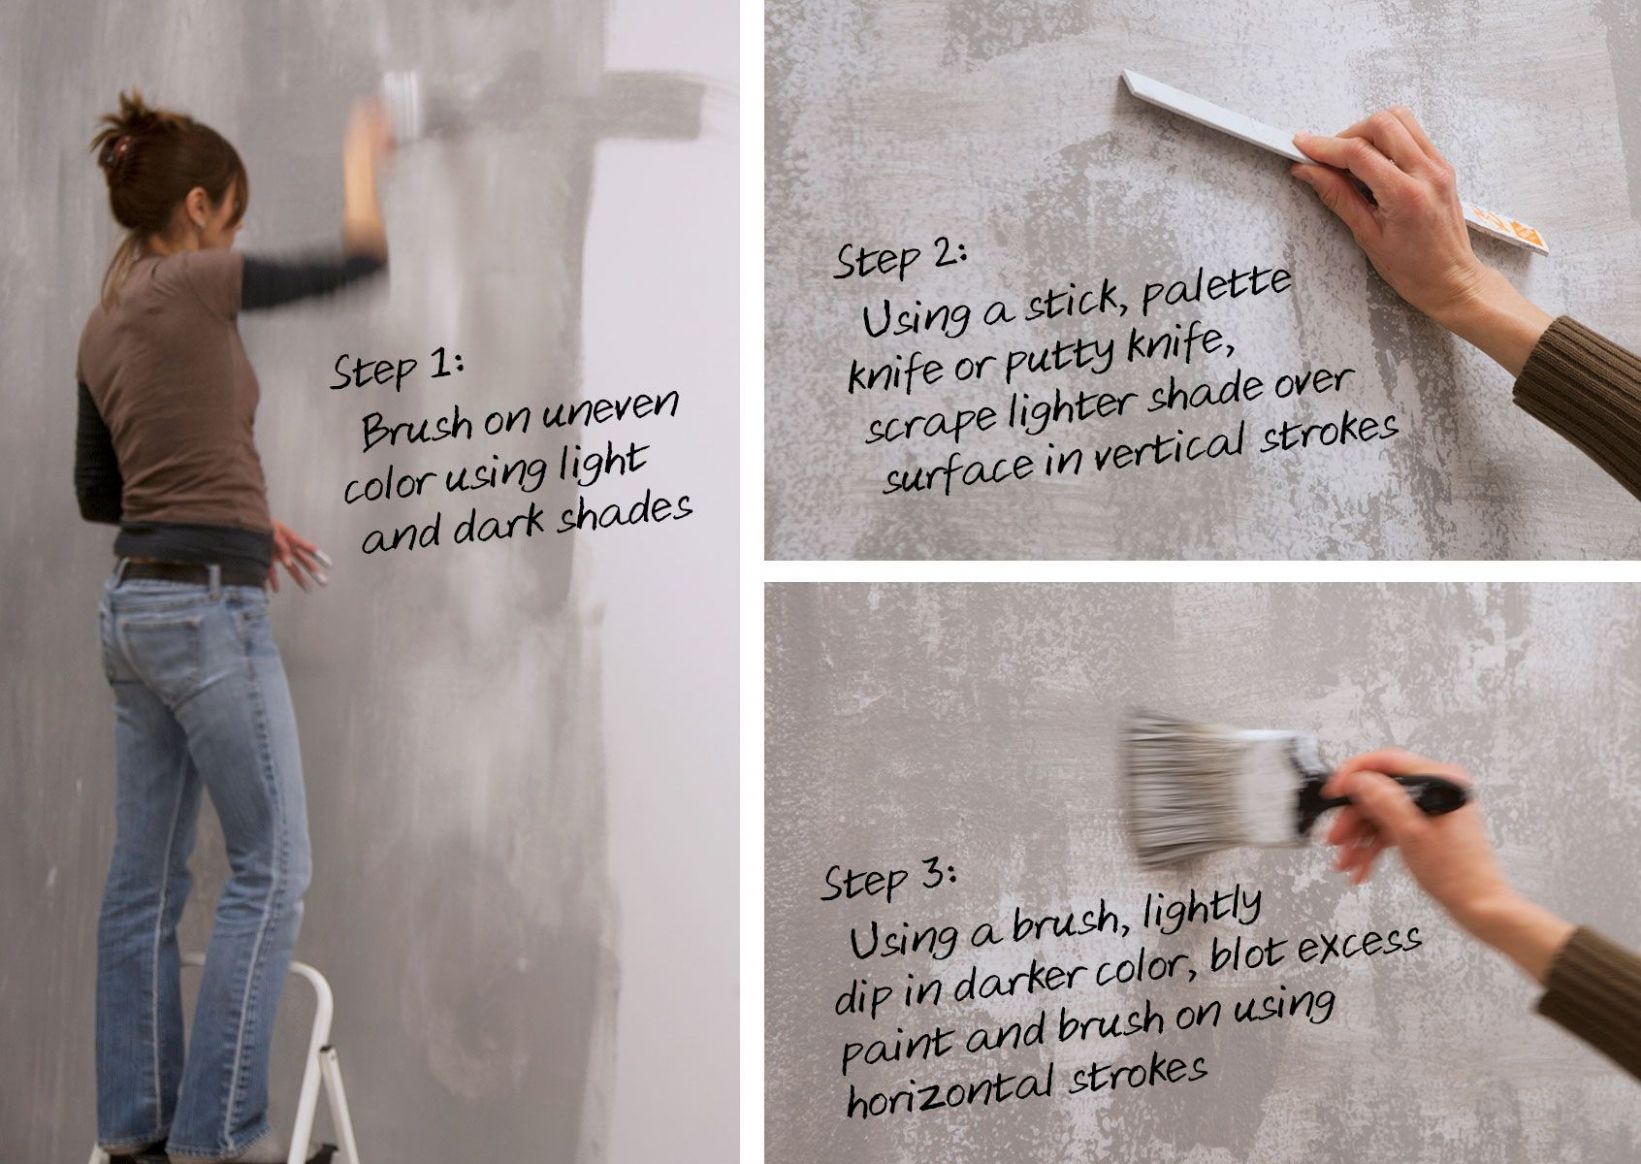 Concrete Wall Finishing Techniques | By Colleen Stiles | 9-9 ...